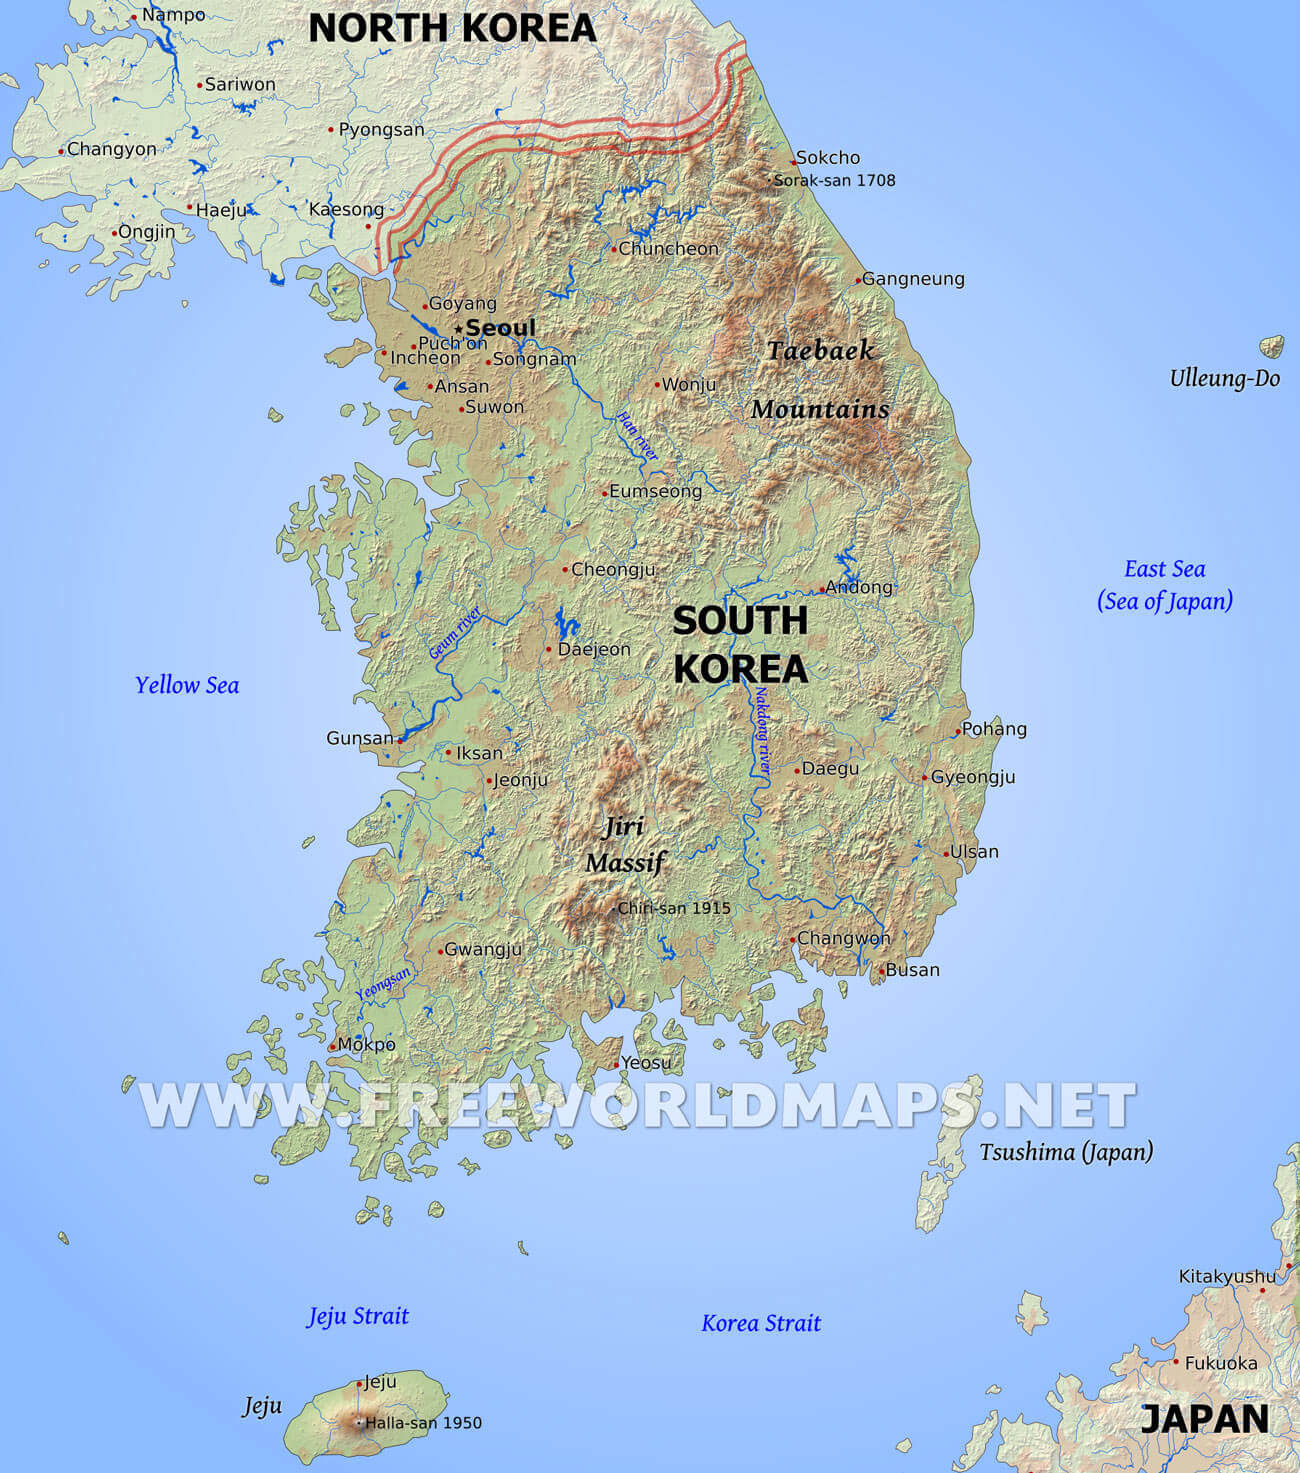 South Korea Physical Map on luxembourg mountains map, malaysia mountains map, cyprus mountains map, taiwan mountains map, hungary mountains map, north caucasus mountains map, sudan mountains map, tunisia mountains map, u.s. mountains map, sierra leone mountains map, finland mountains map, dominica mountains map, belize mountains map, bhutan mountains map, western us mountains map, aleutian islands mountains map, barbados mountains map, bangladesh mountains map, euphrates mountains map, liberia mountains map,